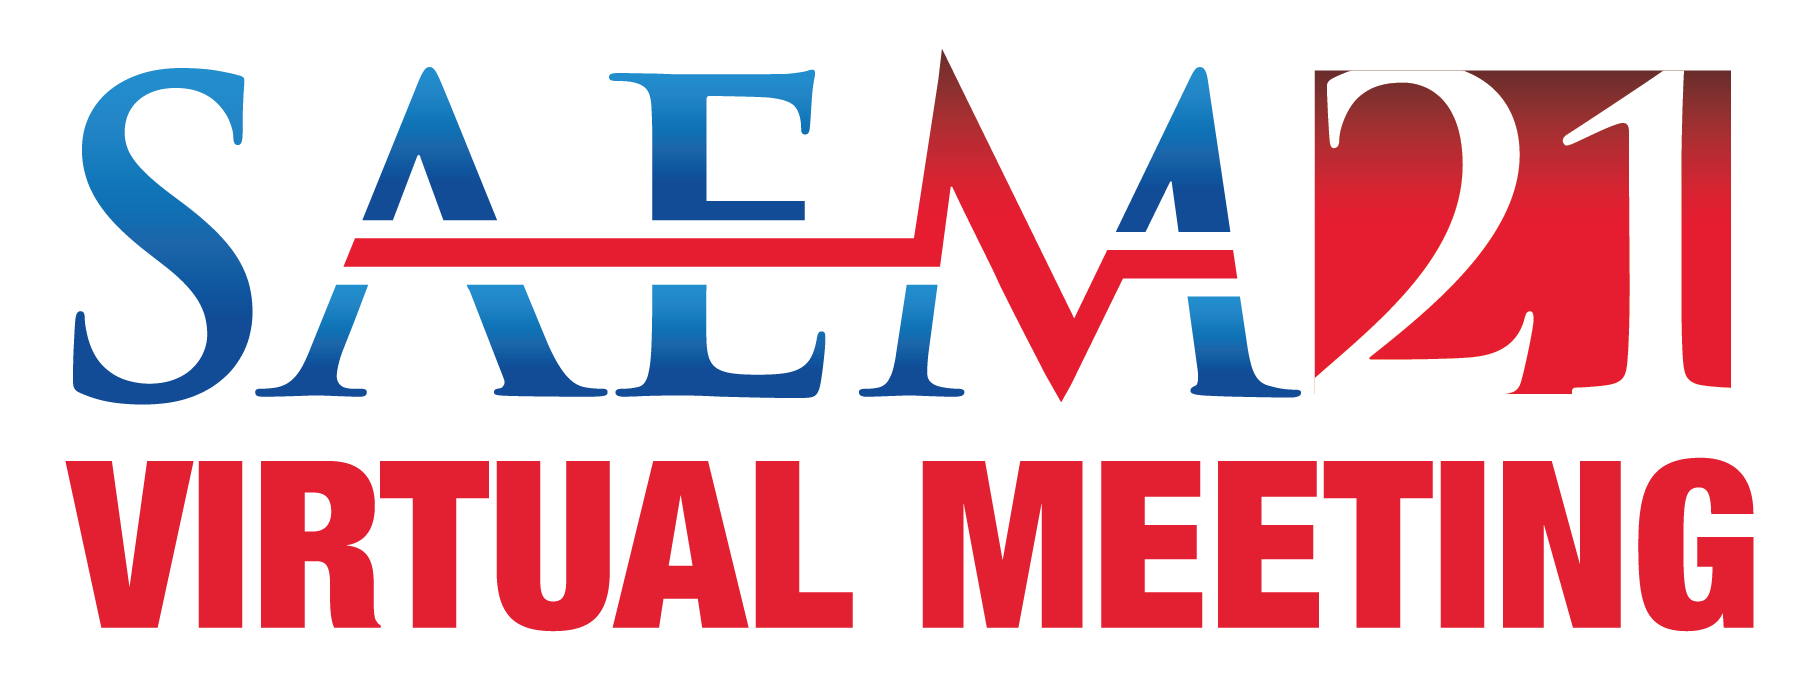 SAEM21 Virtual Meeting logo